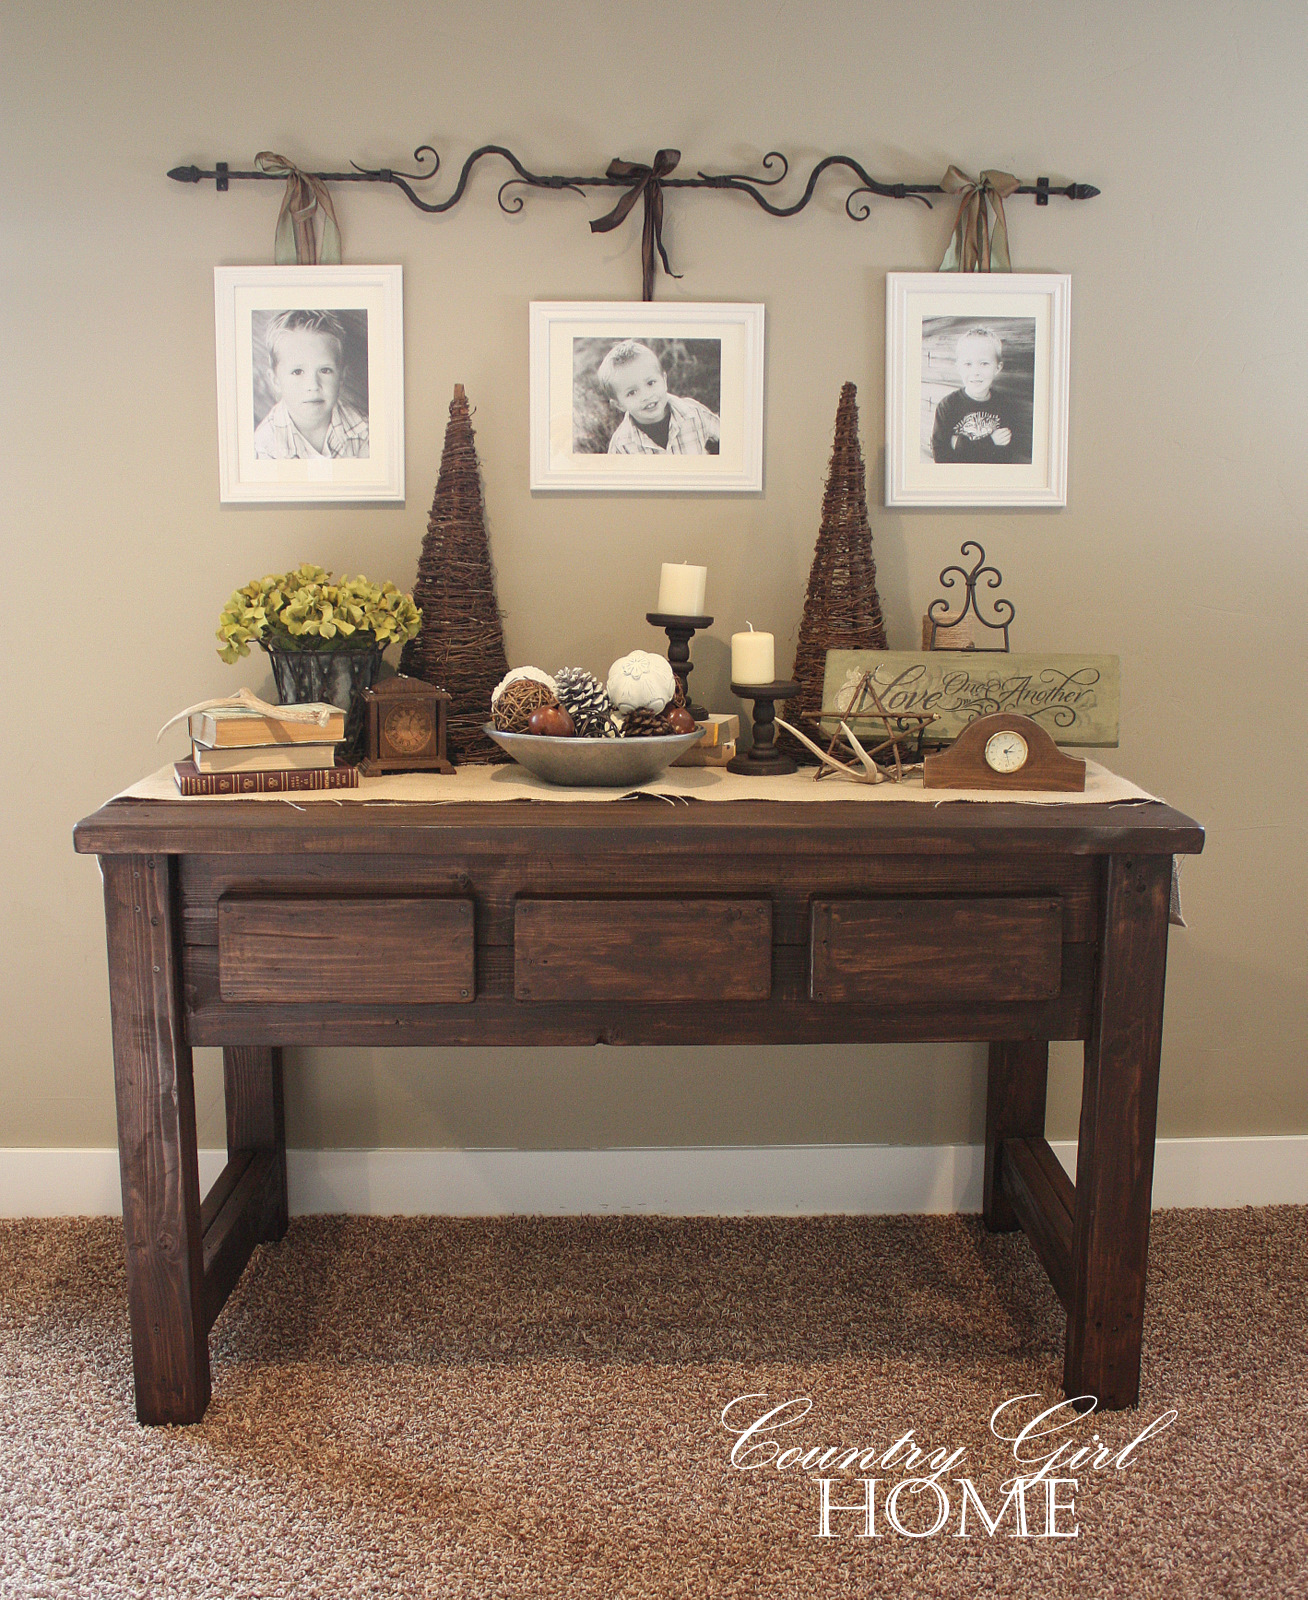 COUNTRY GIRL HOME : my new